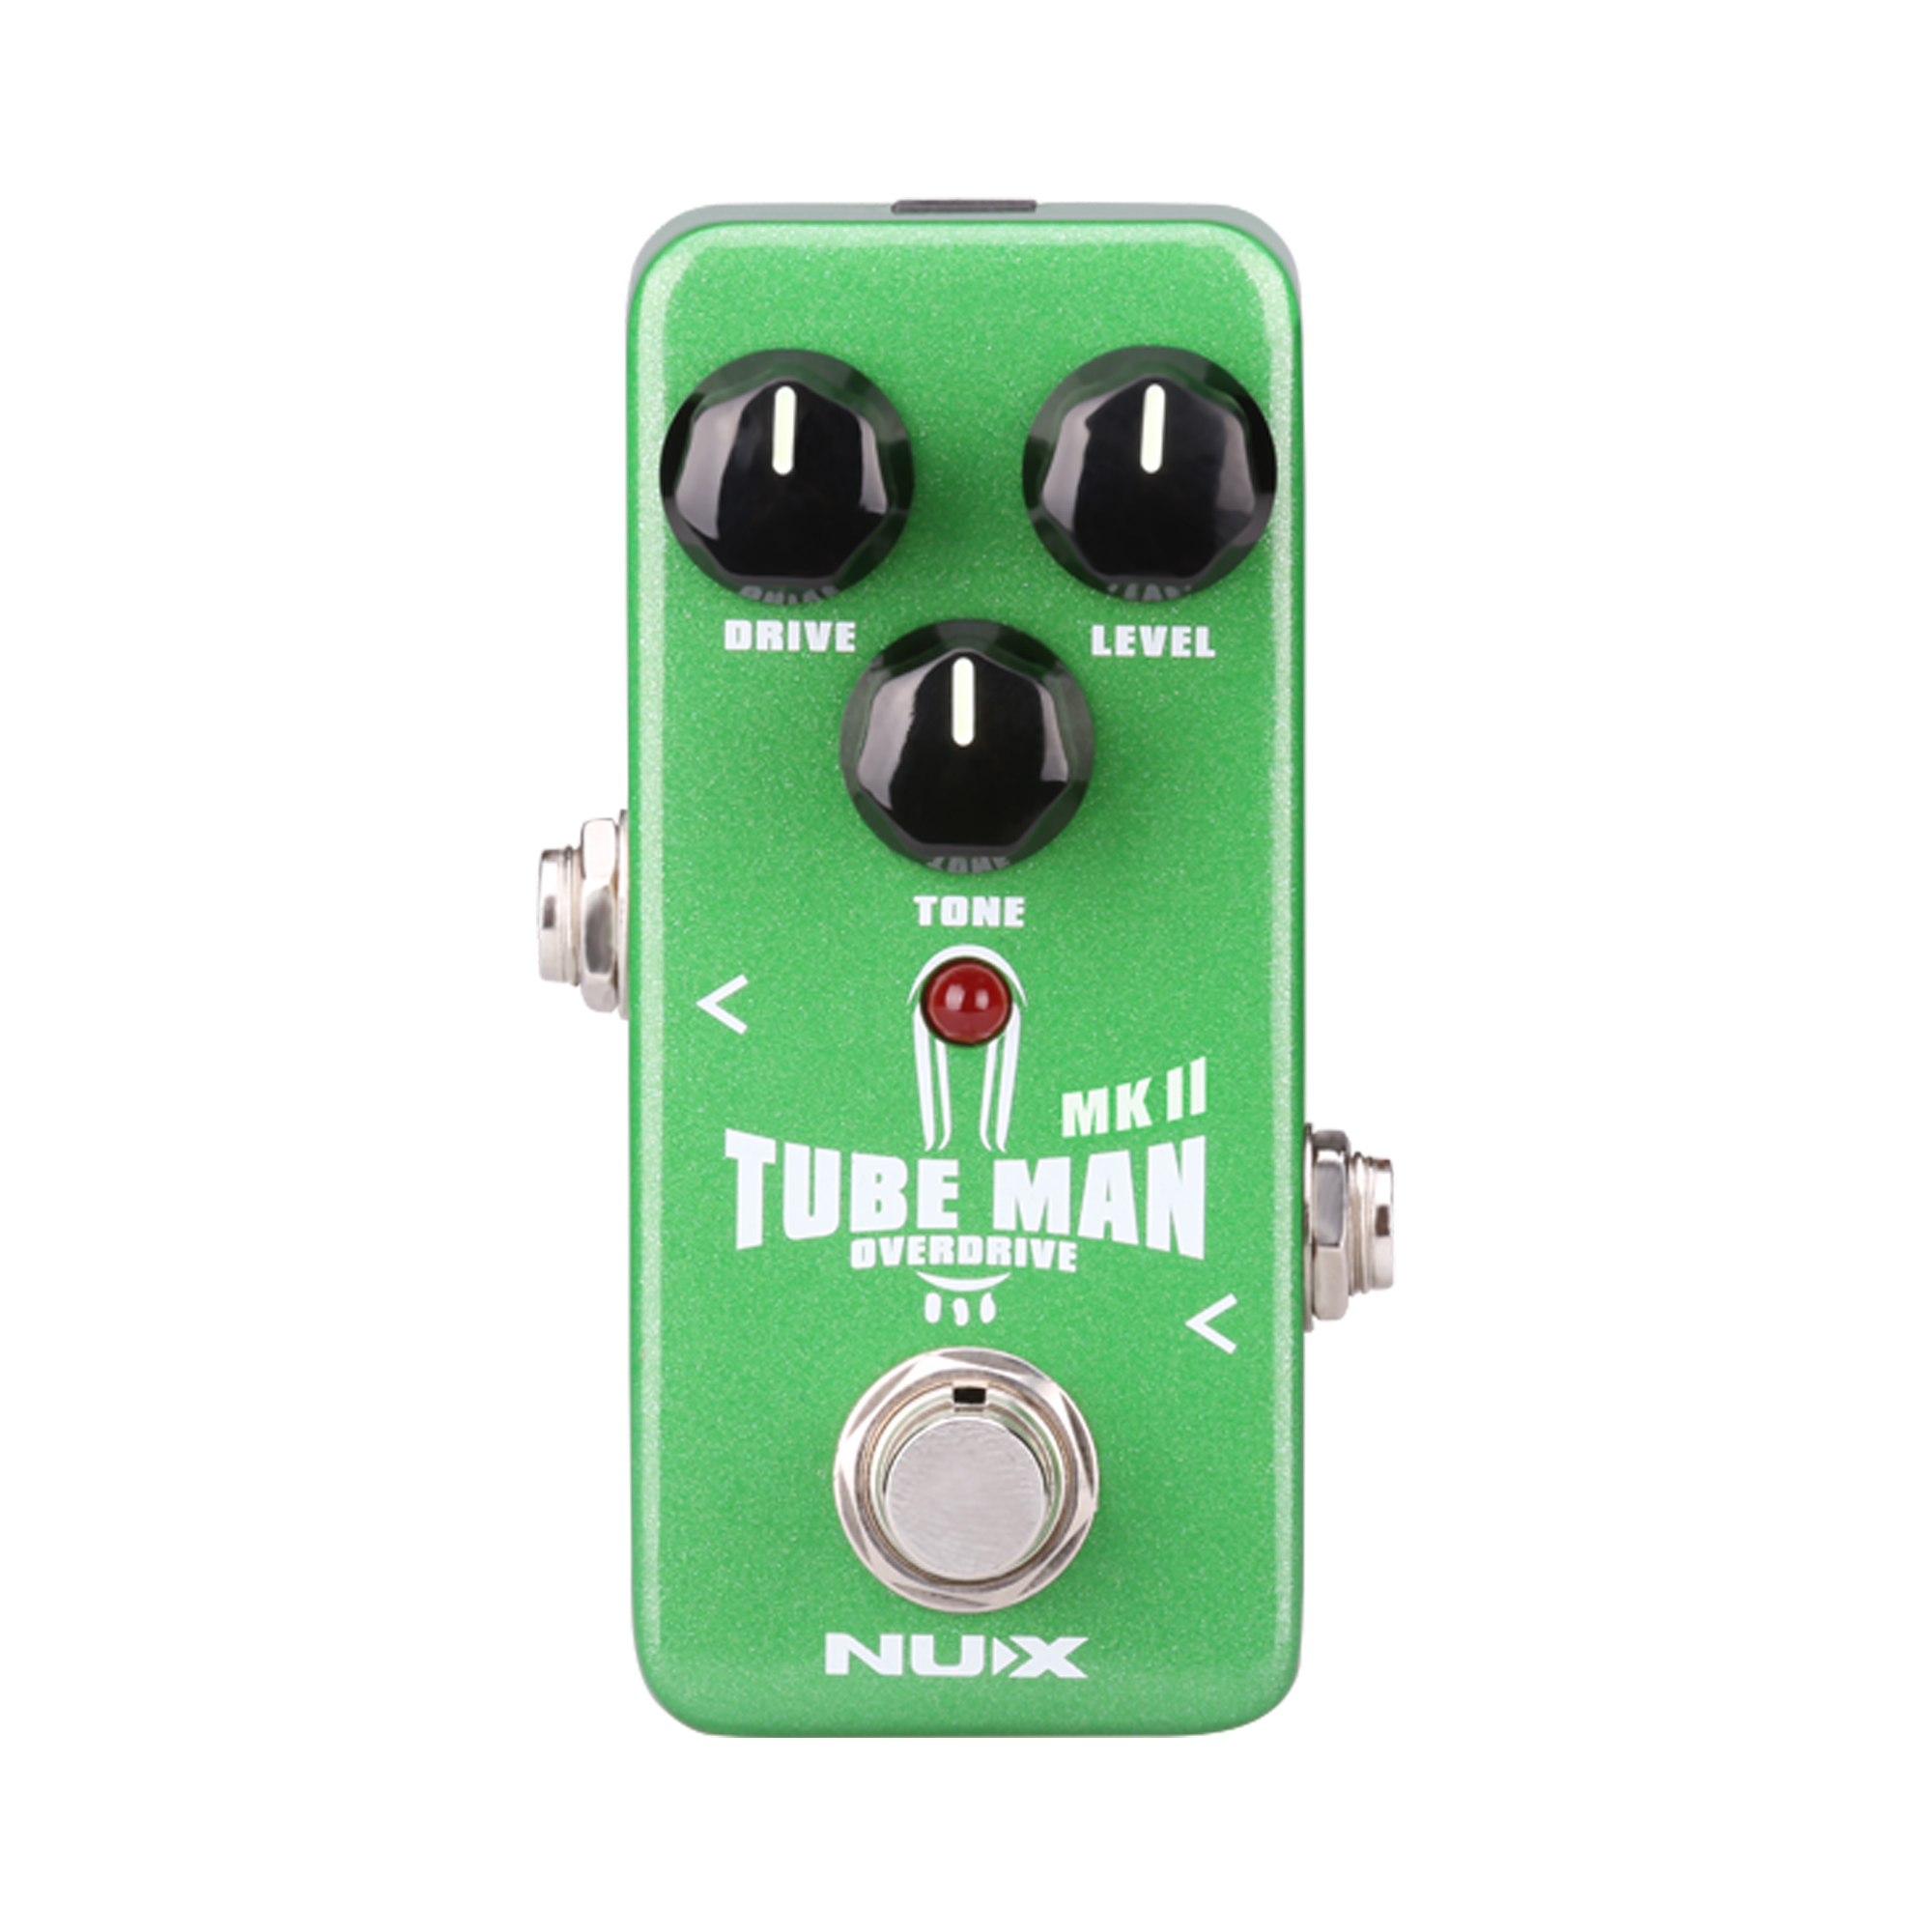 nux tube man mkii overdrive guitar effect pedal tube like sound screamer electric tubeman mini. Black Bedroom Furniture Sets. Home Design Ideas